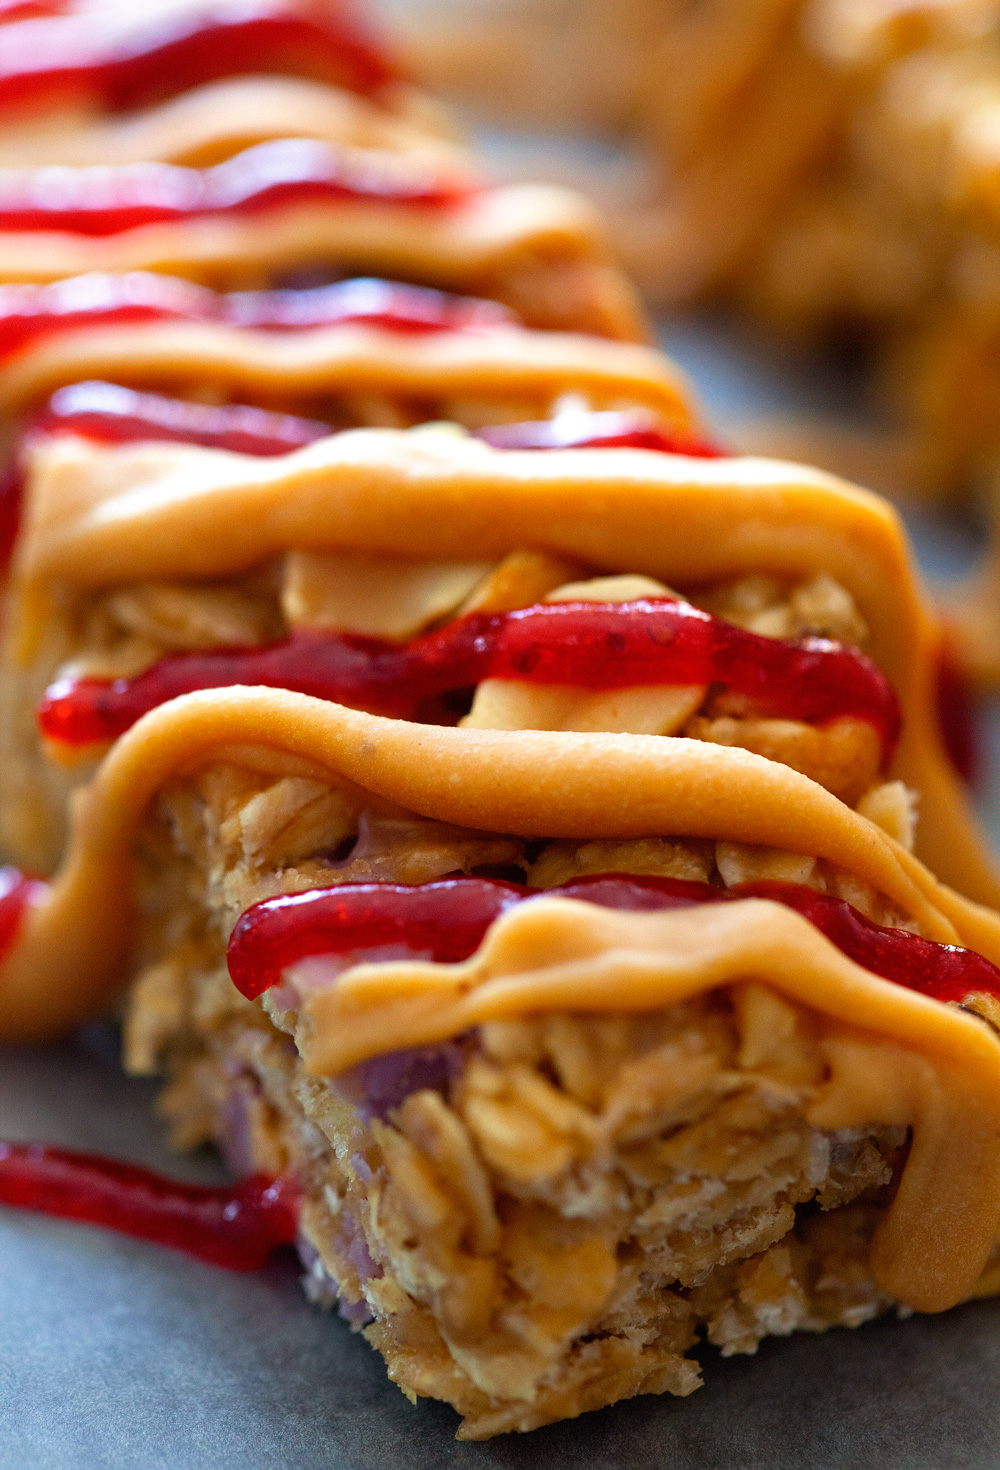 Peanut Butter and Jelly Granola Bars by Deliciously Yum!